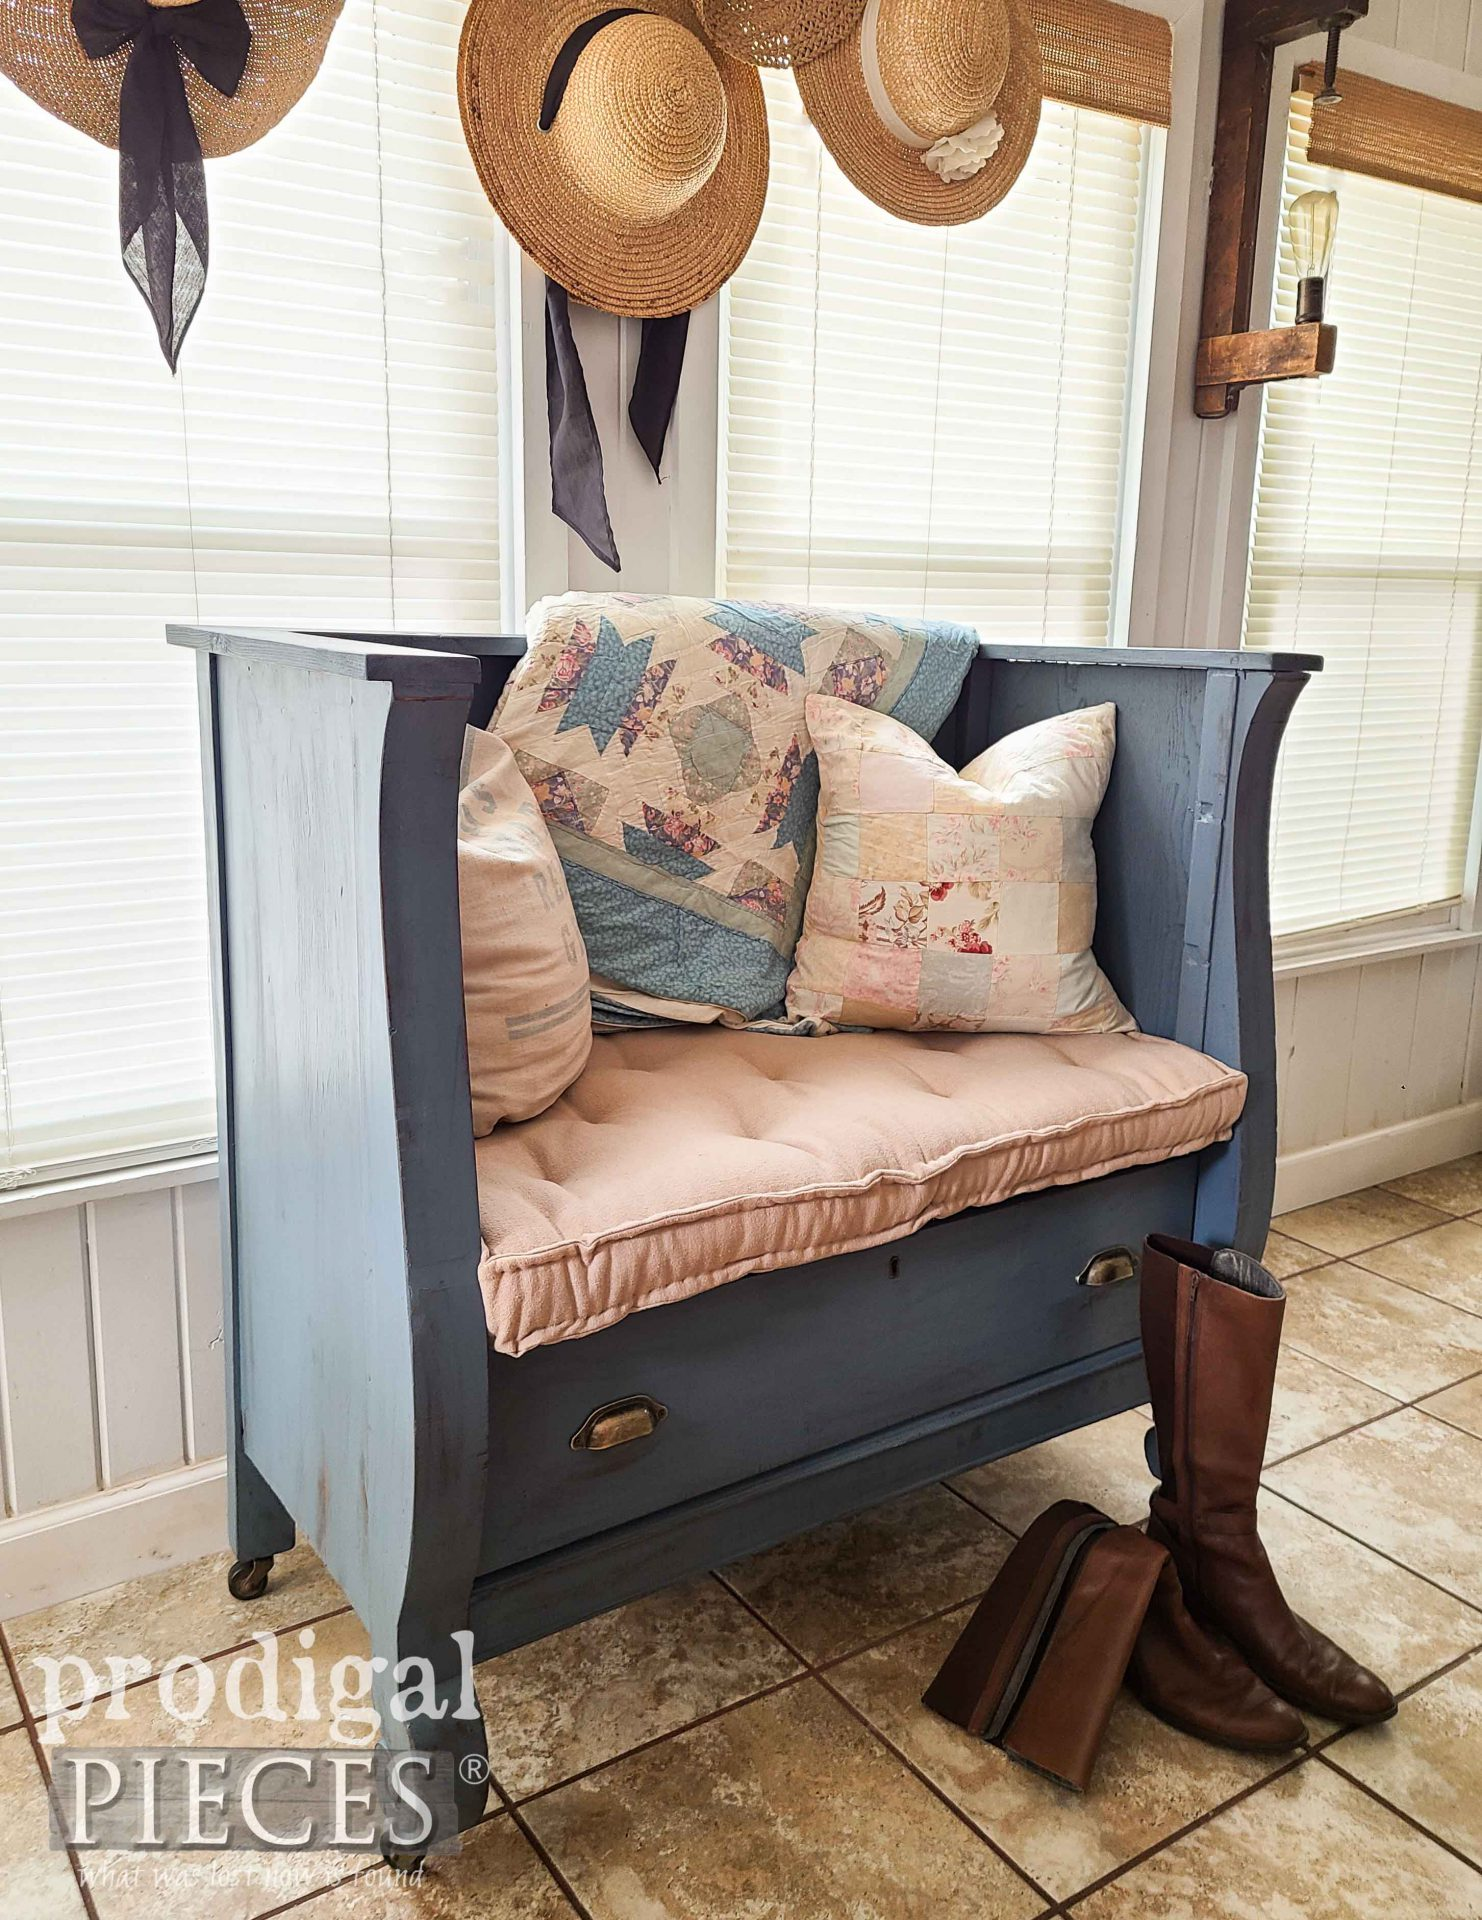 Cottage Style Bench from Upcycled Antique Empire Chest of Drawers by Larissa of Prodigal Pieces | prodigalpieces.com #prodigalpieces #diy #home #furniture #homedecor